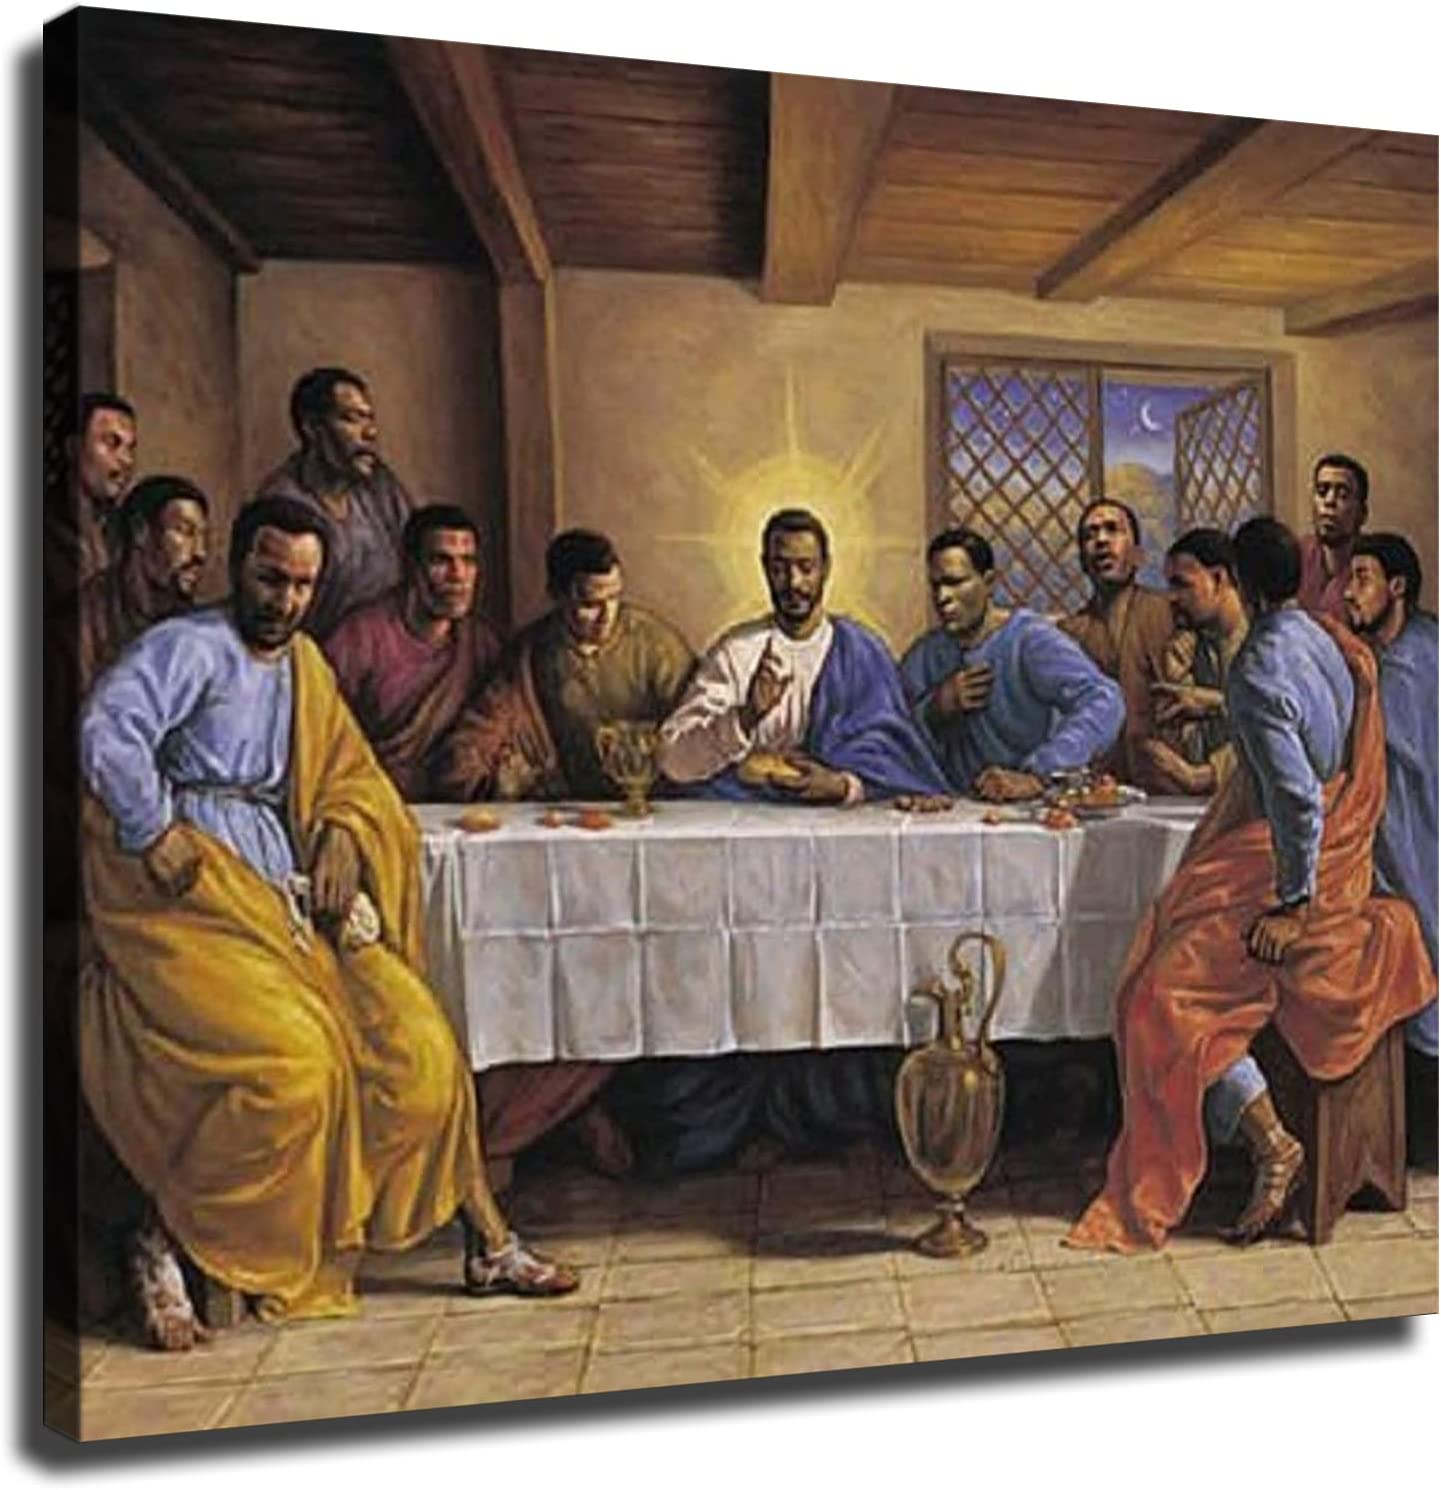 Last Supper By Sarah Jenkins African American Religious Poster Canvas Print Wall Art Modern Classroom Kitchen Bedroom Room Aesthetics Decoration Boys Women Gift Unframed and Framed (20×27inch-No Framed)